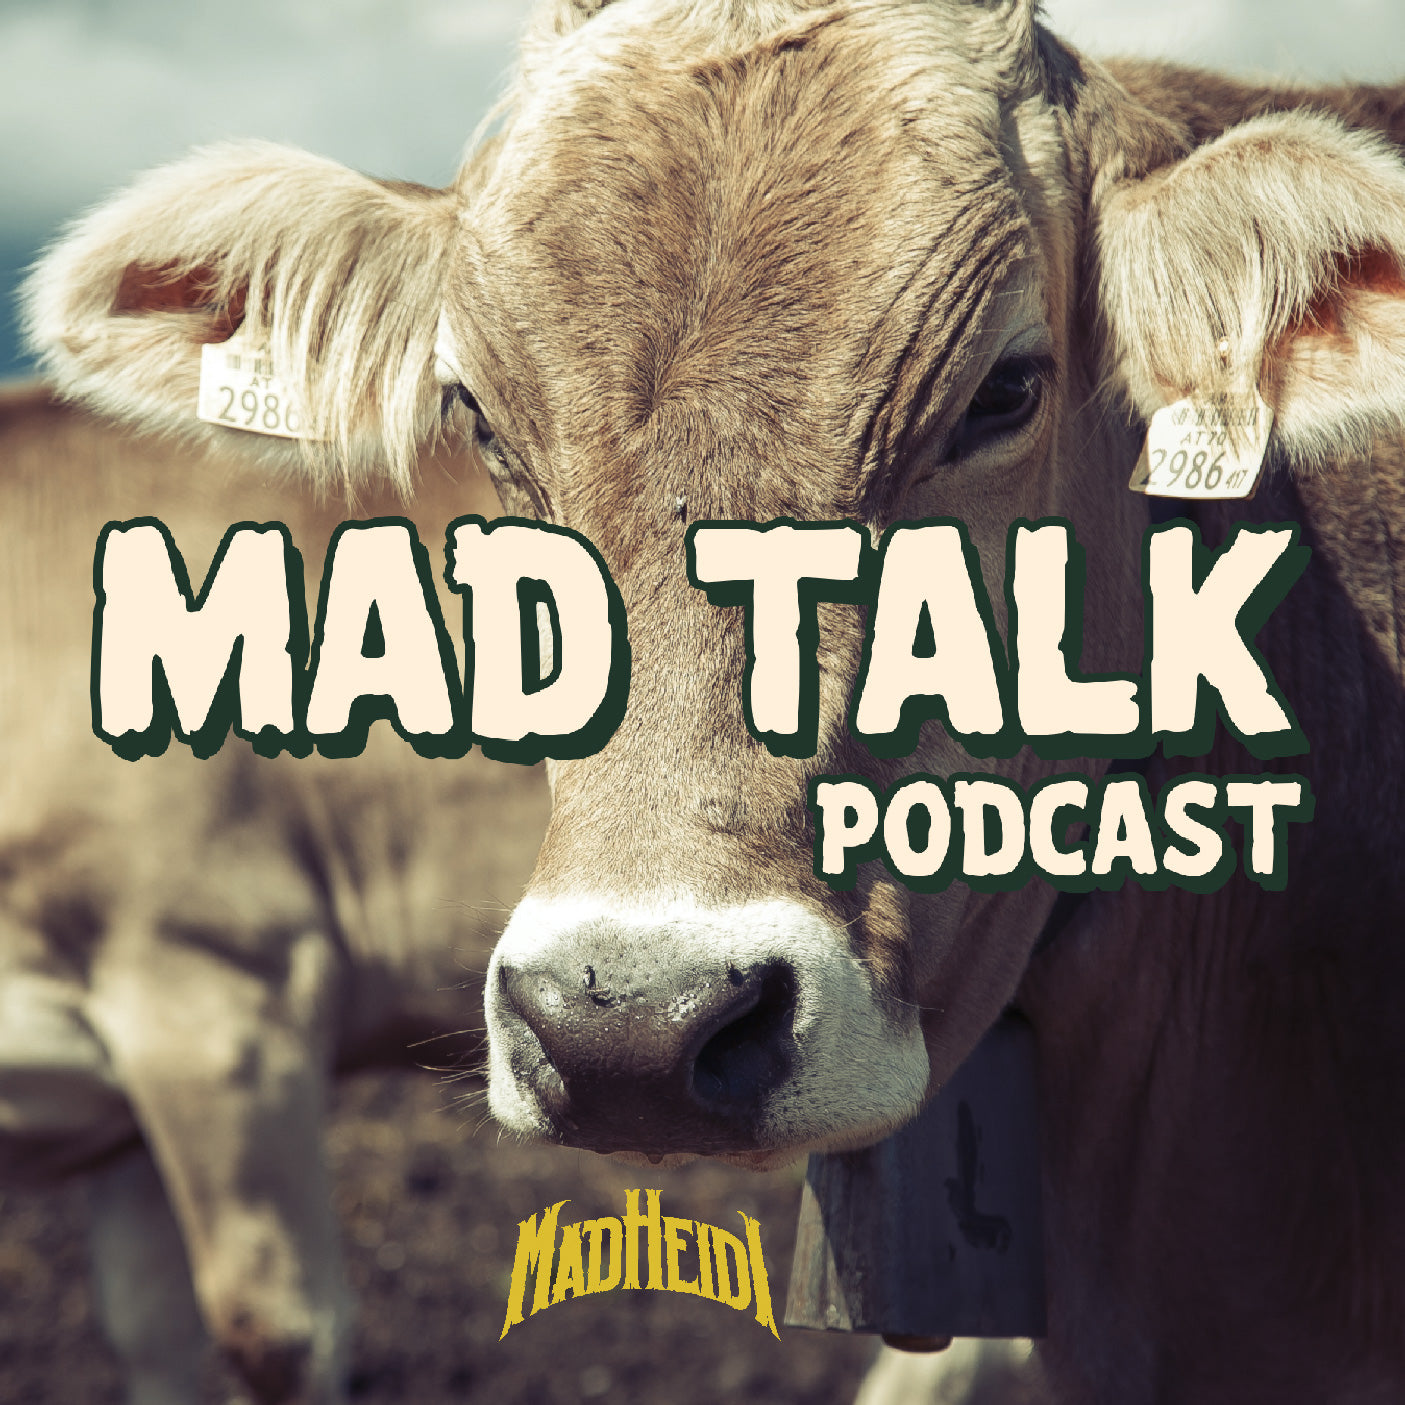 Mad Talk Podcast Episode #1